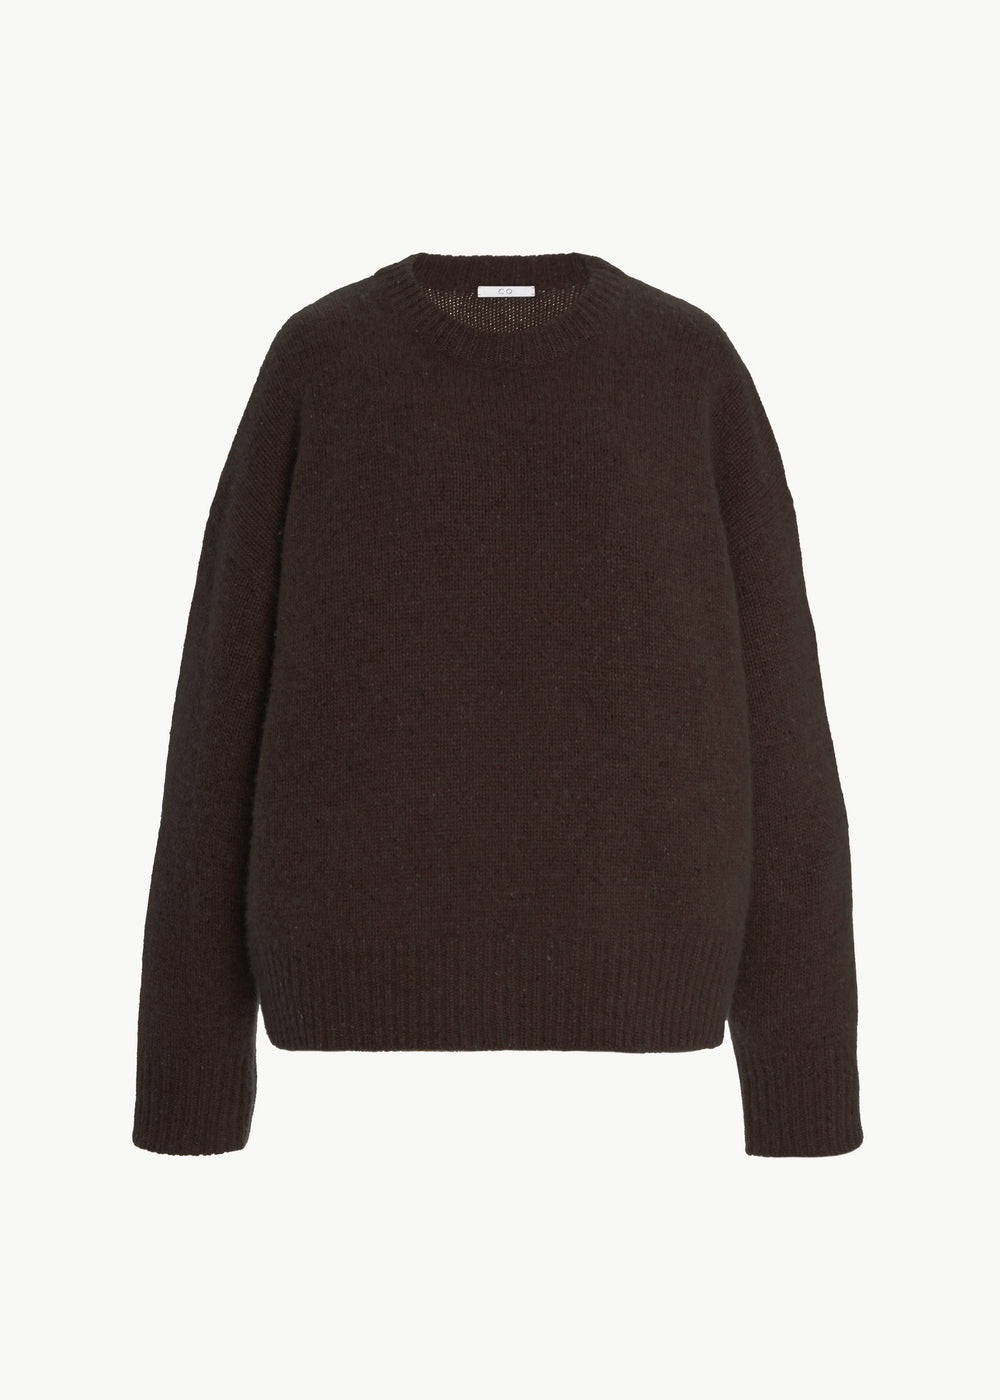 Crew Neck Sweater in Cashmere - Umber Melange - CO